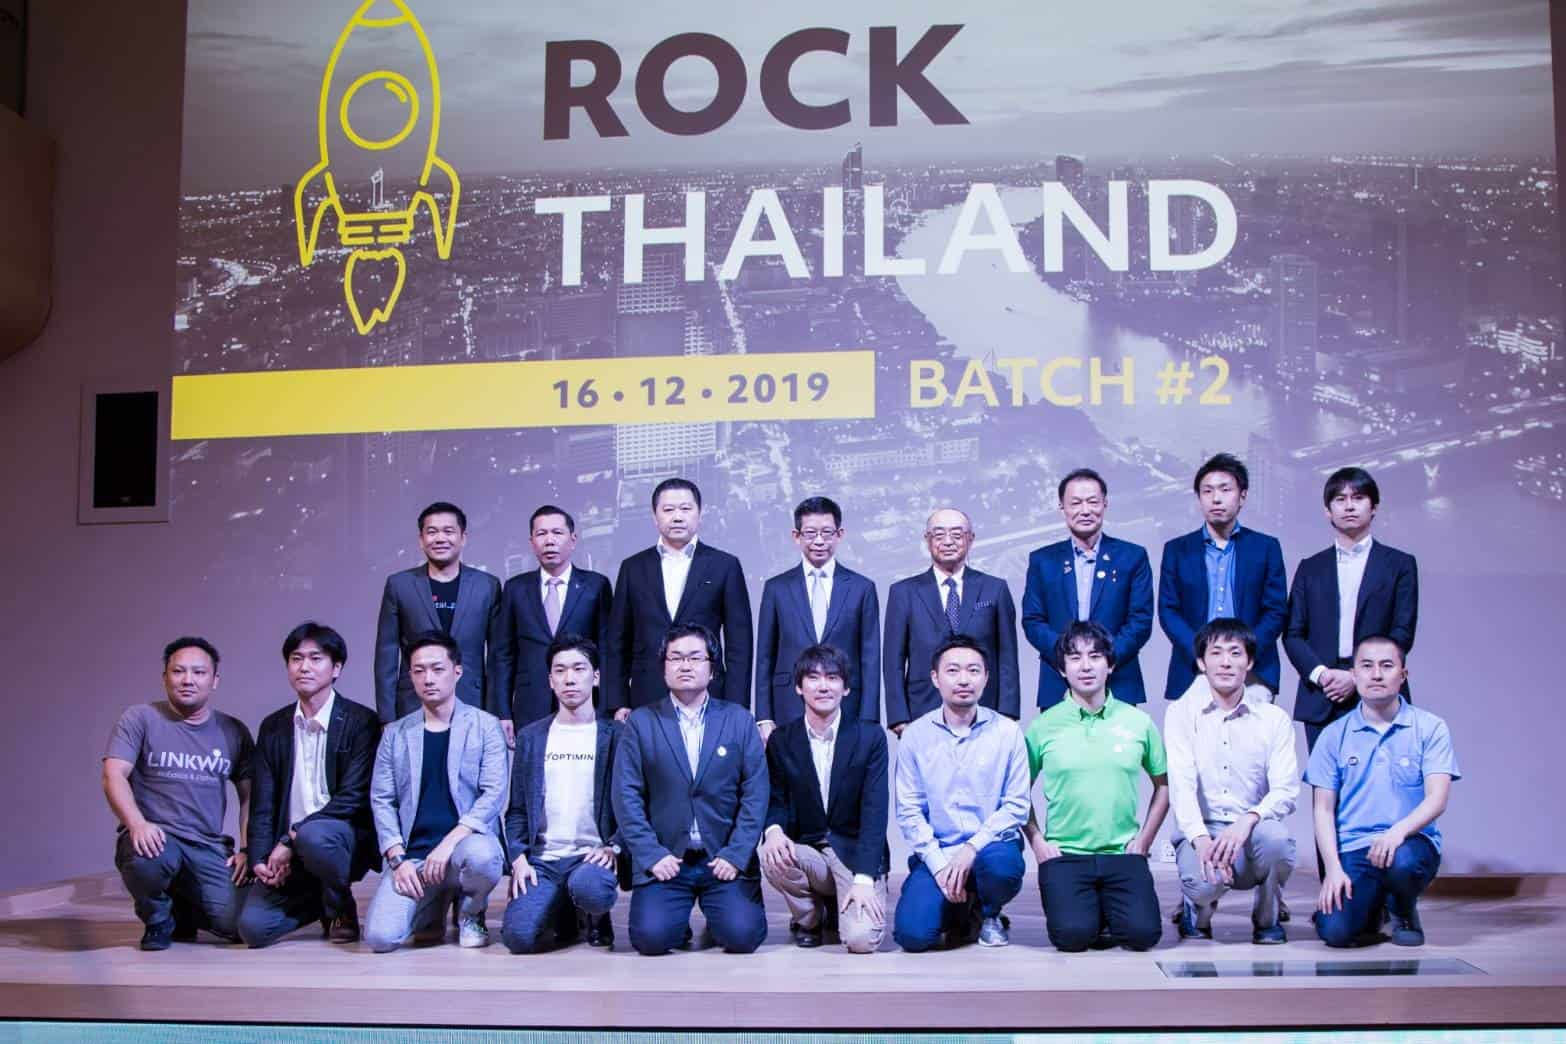 ROCK THAILAND OPENS CHANCES FOR TOP JAPANESE STARTUPS TO CONNECT WITH THAI CORPORATE.